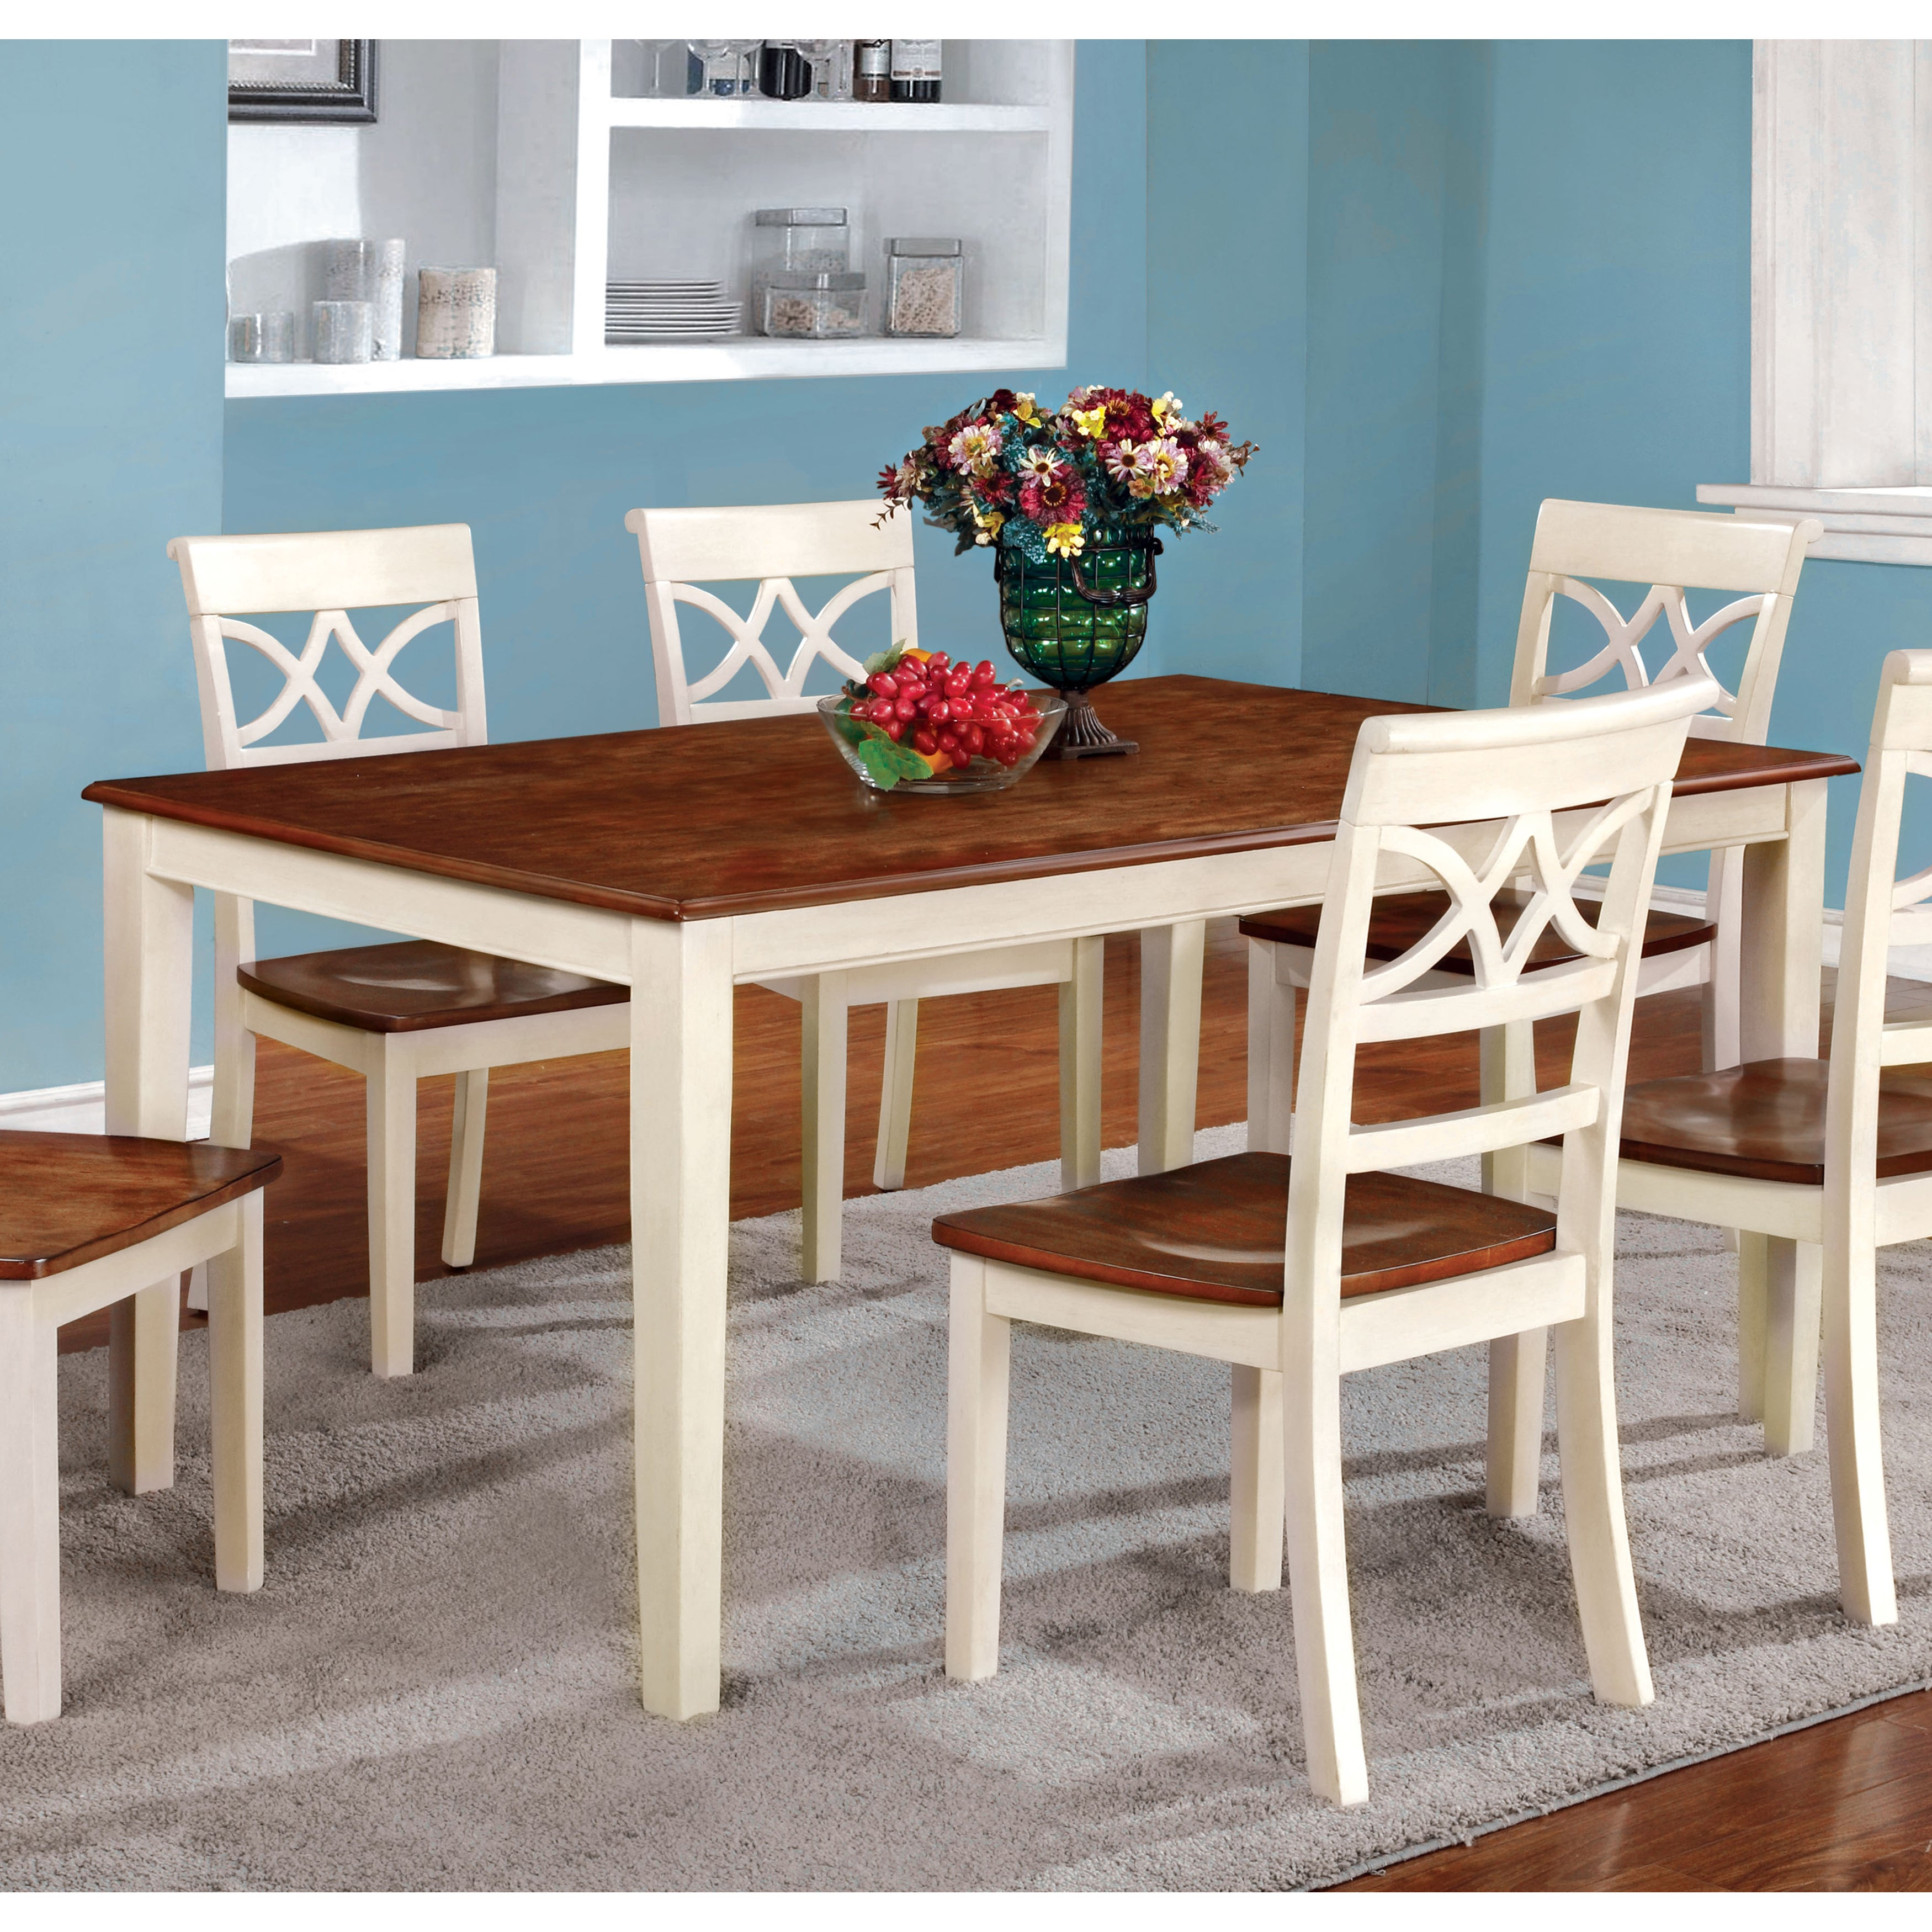 The Gray Barn Epona Two Tone Dining Table